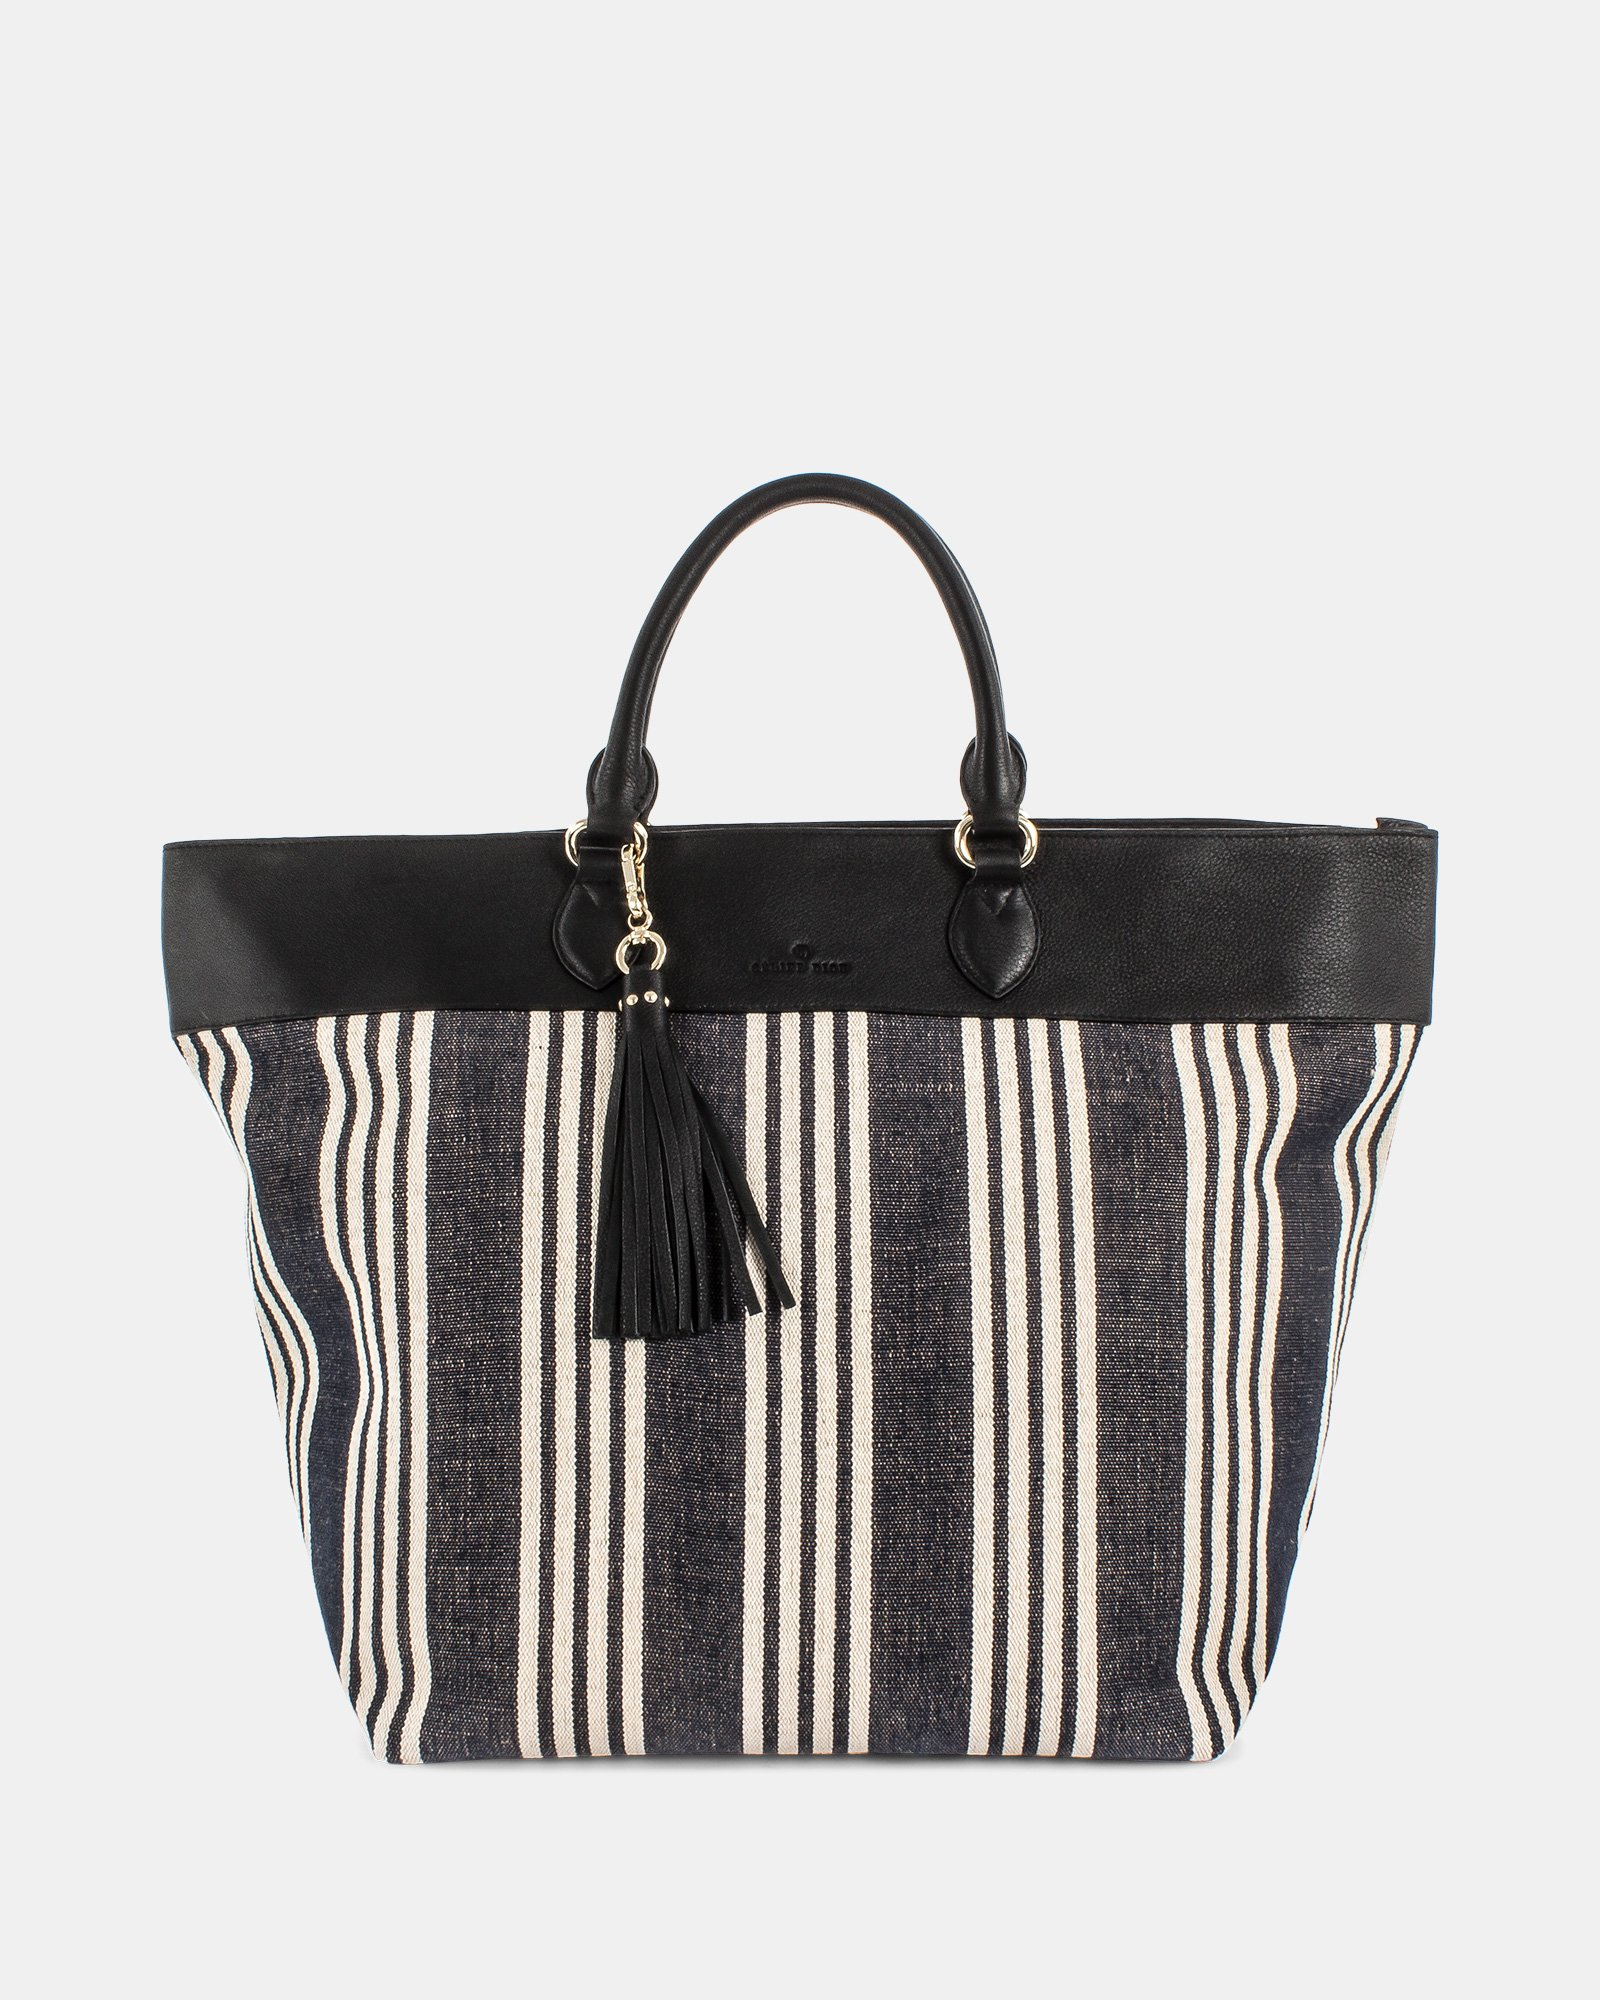 FORTE - Large tote bag in canvas and leather trims - Stripe/black - Céline Dion - Zoom